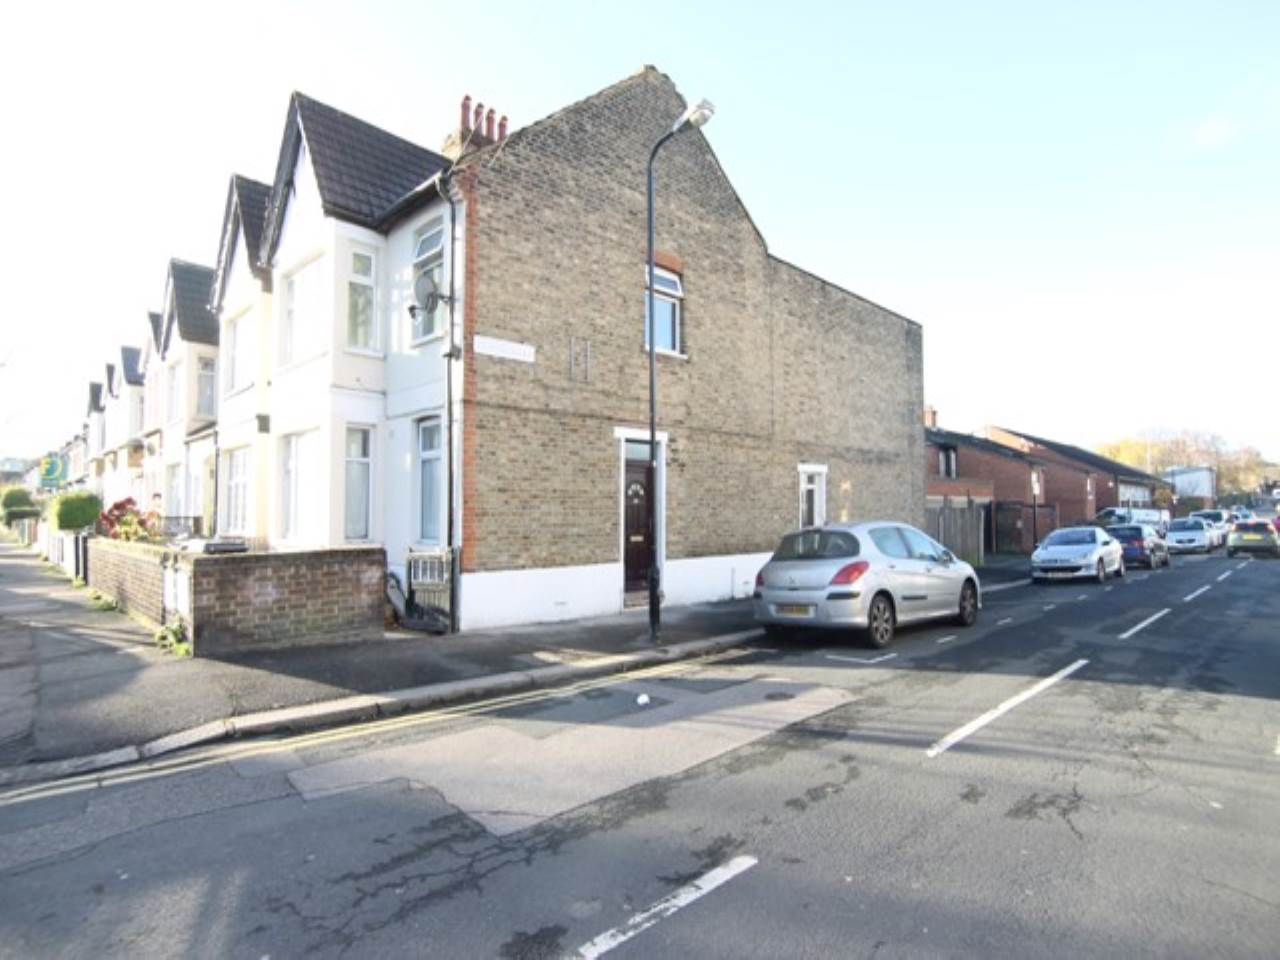 2 bed flat to rent in Walthamstow - Property Image 1